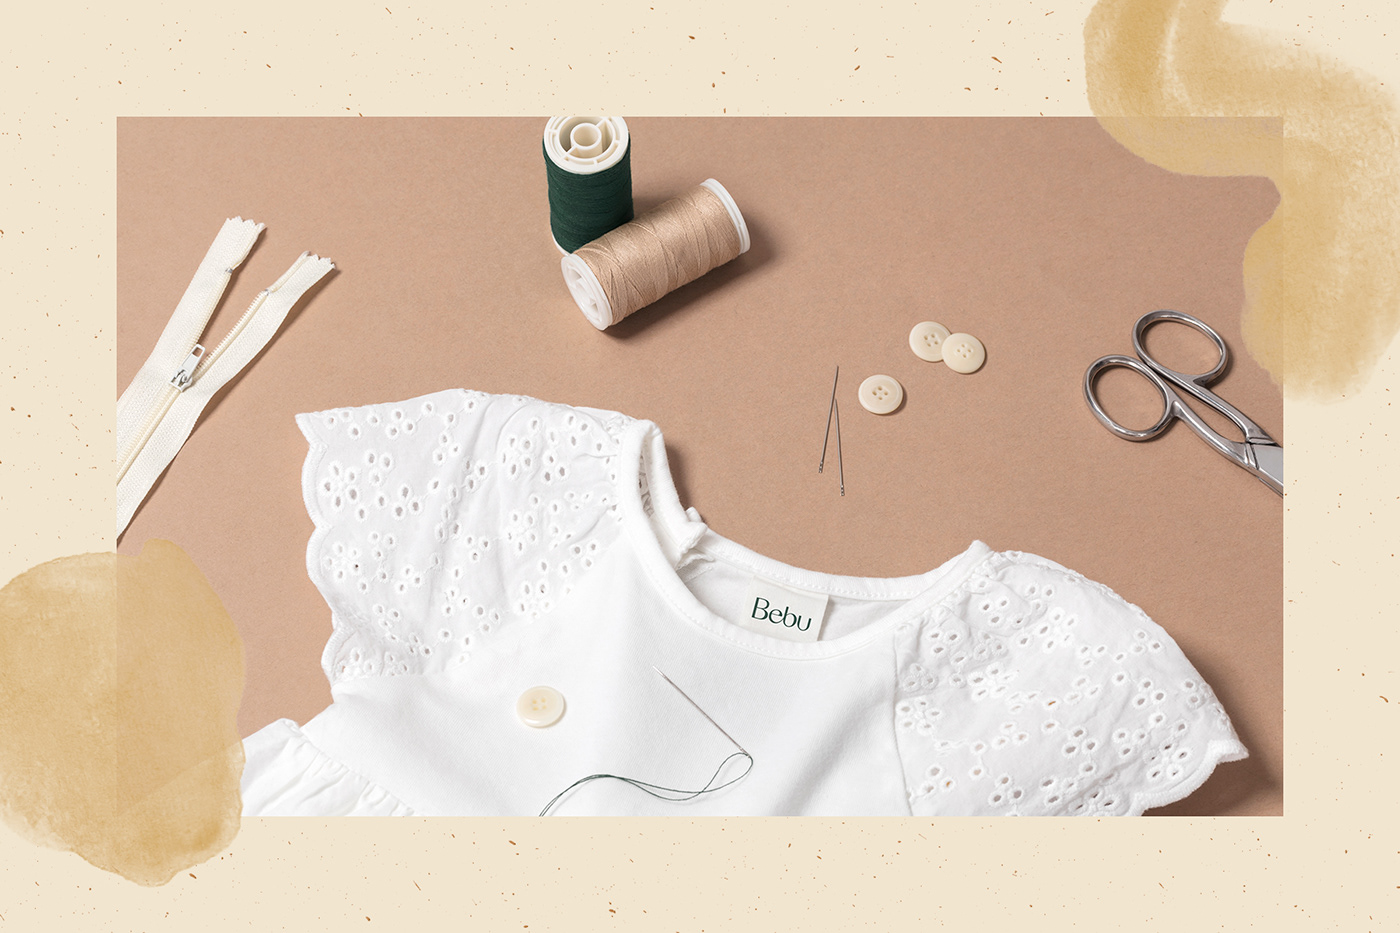 babies baby fashion branding  clothes design Fashion  graphic design  identity illustrations textures